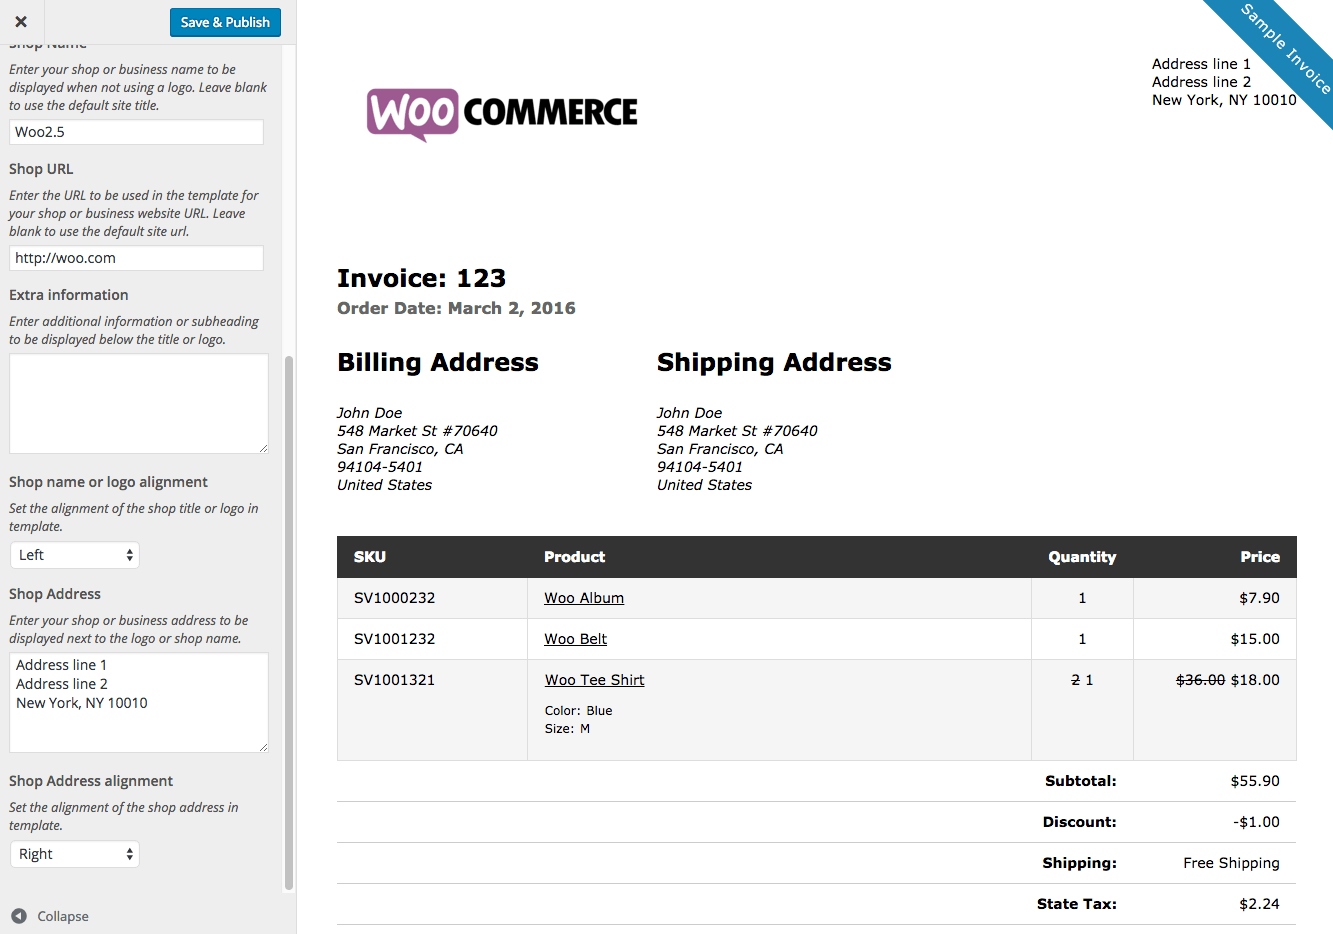 Weirdmailus  Prepossessing Woocommerce Print Invoices Amp Packing Lists  Woocommerce Docs With Extraordinary Woocommerce Print Invoices  Packing Lists Customizer With Endearing Invoice Processing System Also Requisitioner On Invoice In Addition Google Invoices Templates Free And Credit Invoice Template As Well As Invoice Template Ato Additionally Overdue Invoice Letter Sample From Docswoocommercecom With Weirdmailus  Extraordinary Woocommerce Print Invoices Amp Packing Lists  Woocommerce Docs With Endearing Woocommerce Print Invoices  Packing Lists Customizer And Prepossessing Invoice Processing System Also Requisitioner On Invoice In Addition Google Invoices Templates Free From Docswoocommercecom